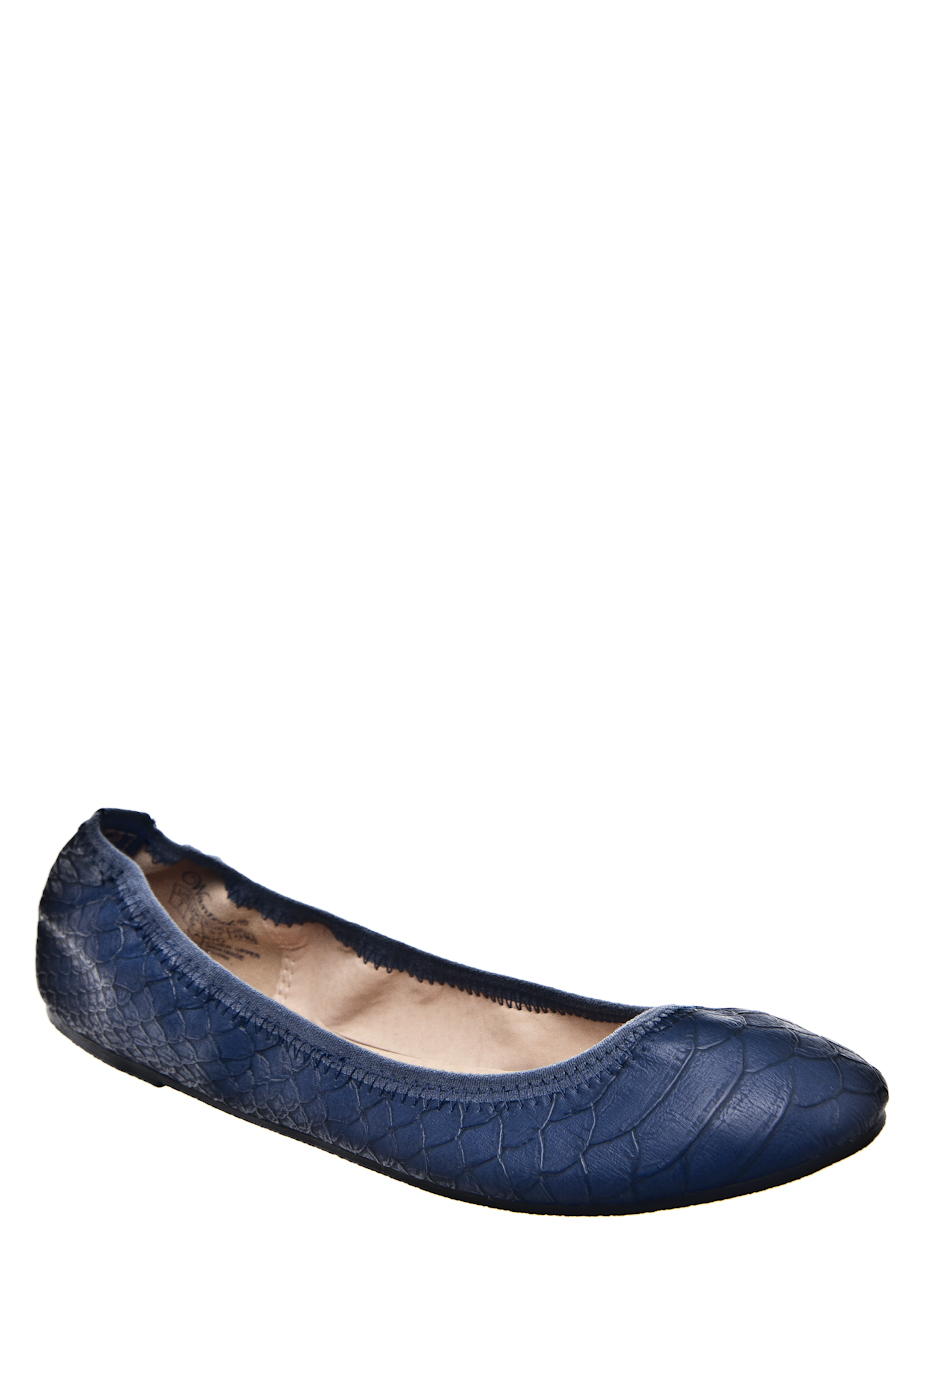 Wanted Lario Ballet Flats - Navy